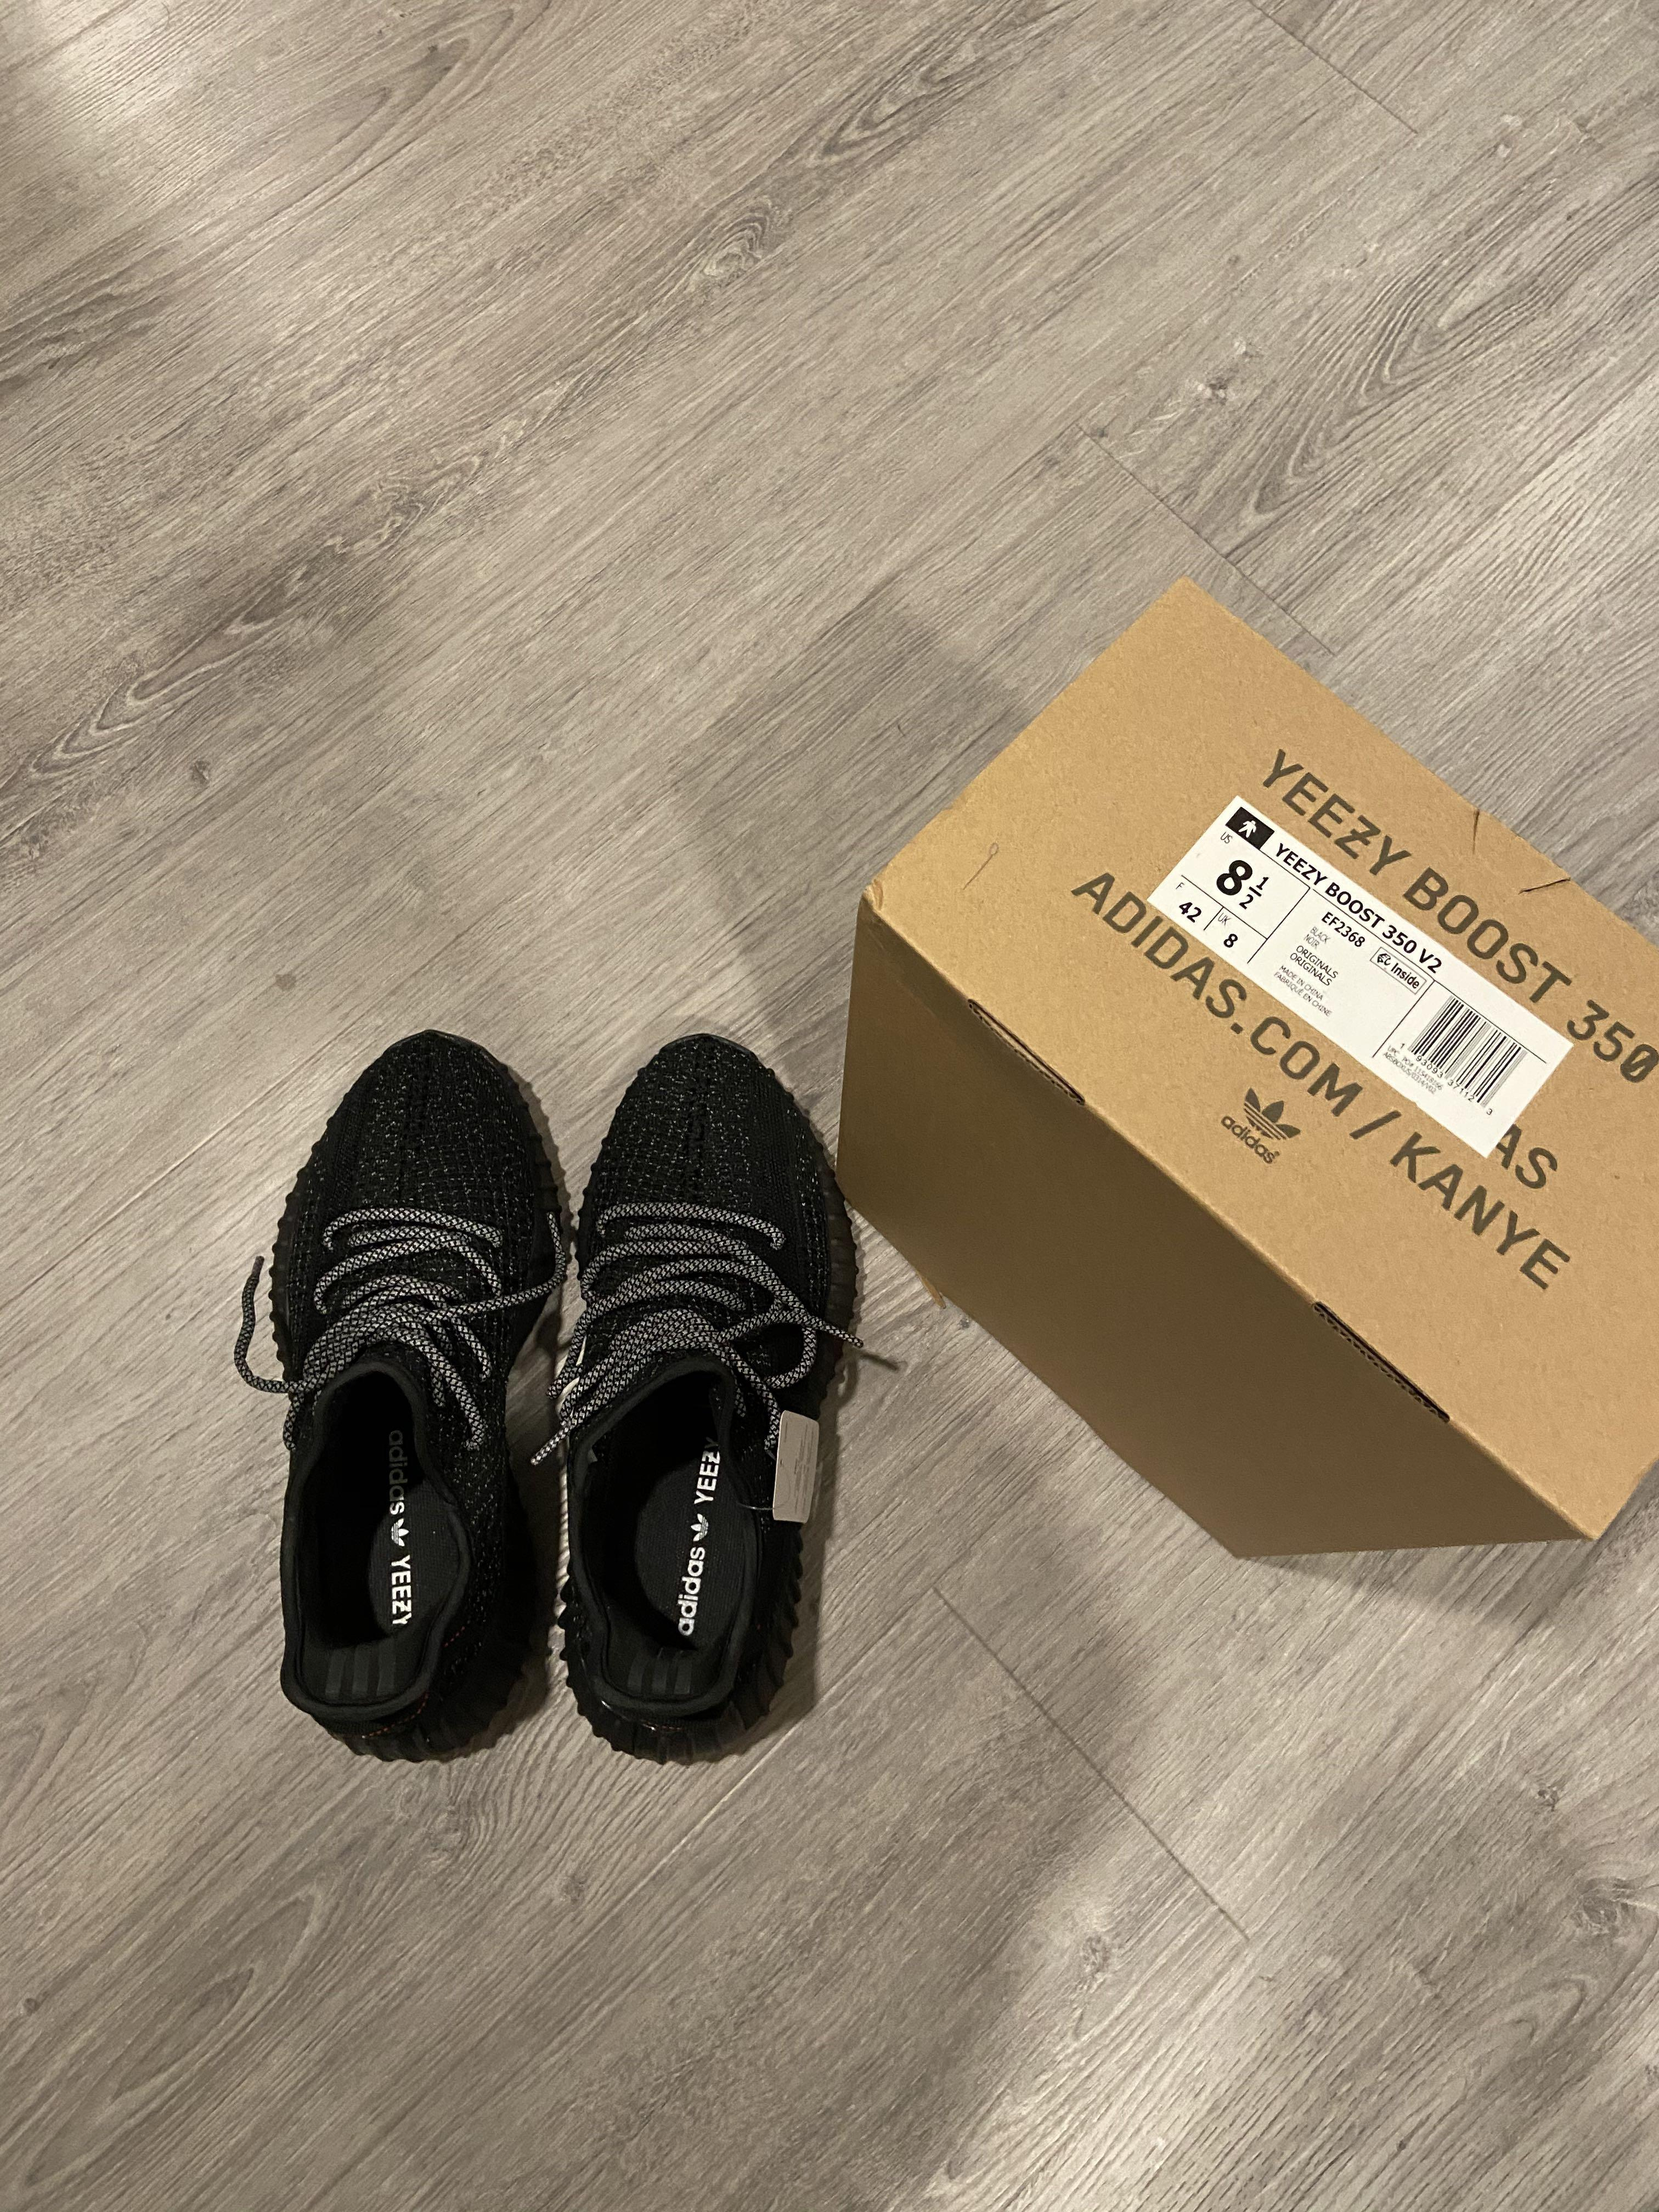 Yeezy Boost 350 (Dupe)